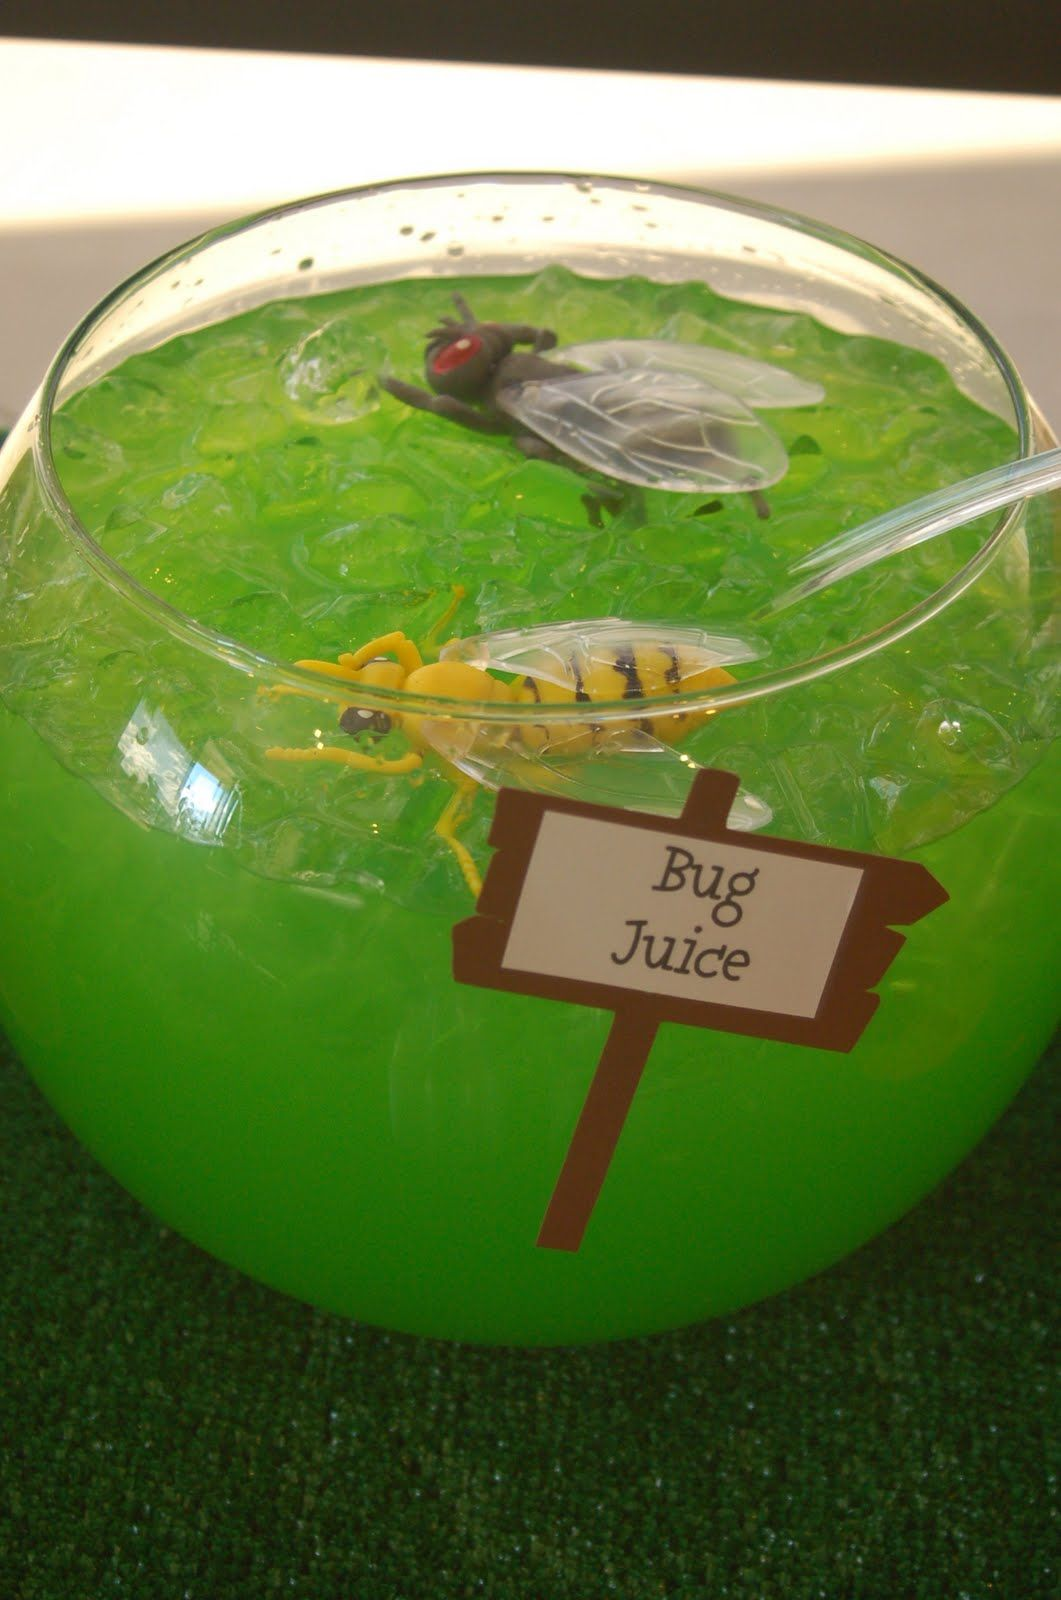 Halloween Theme Party Ideas.Halloween Theme Birthday Party Bug Juice And Other Bug Theme Party